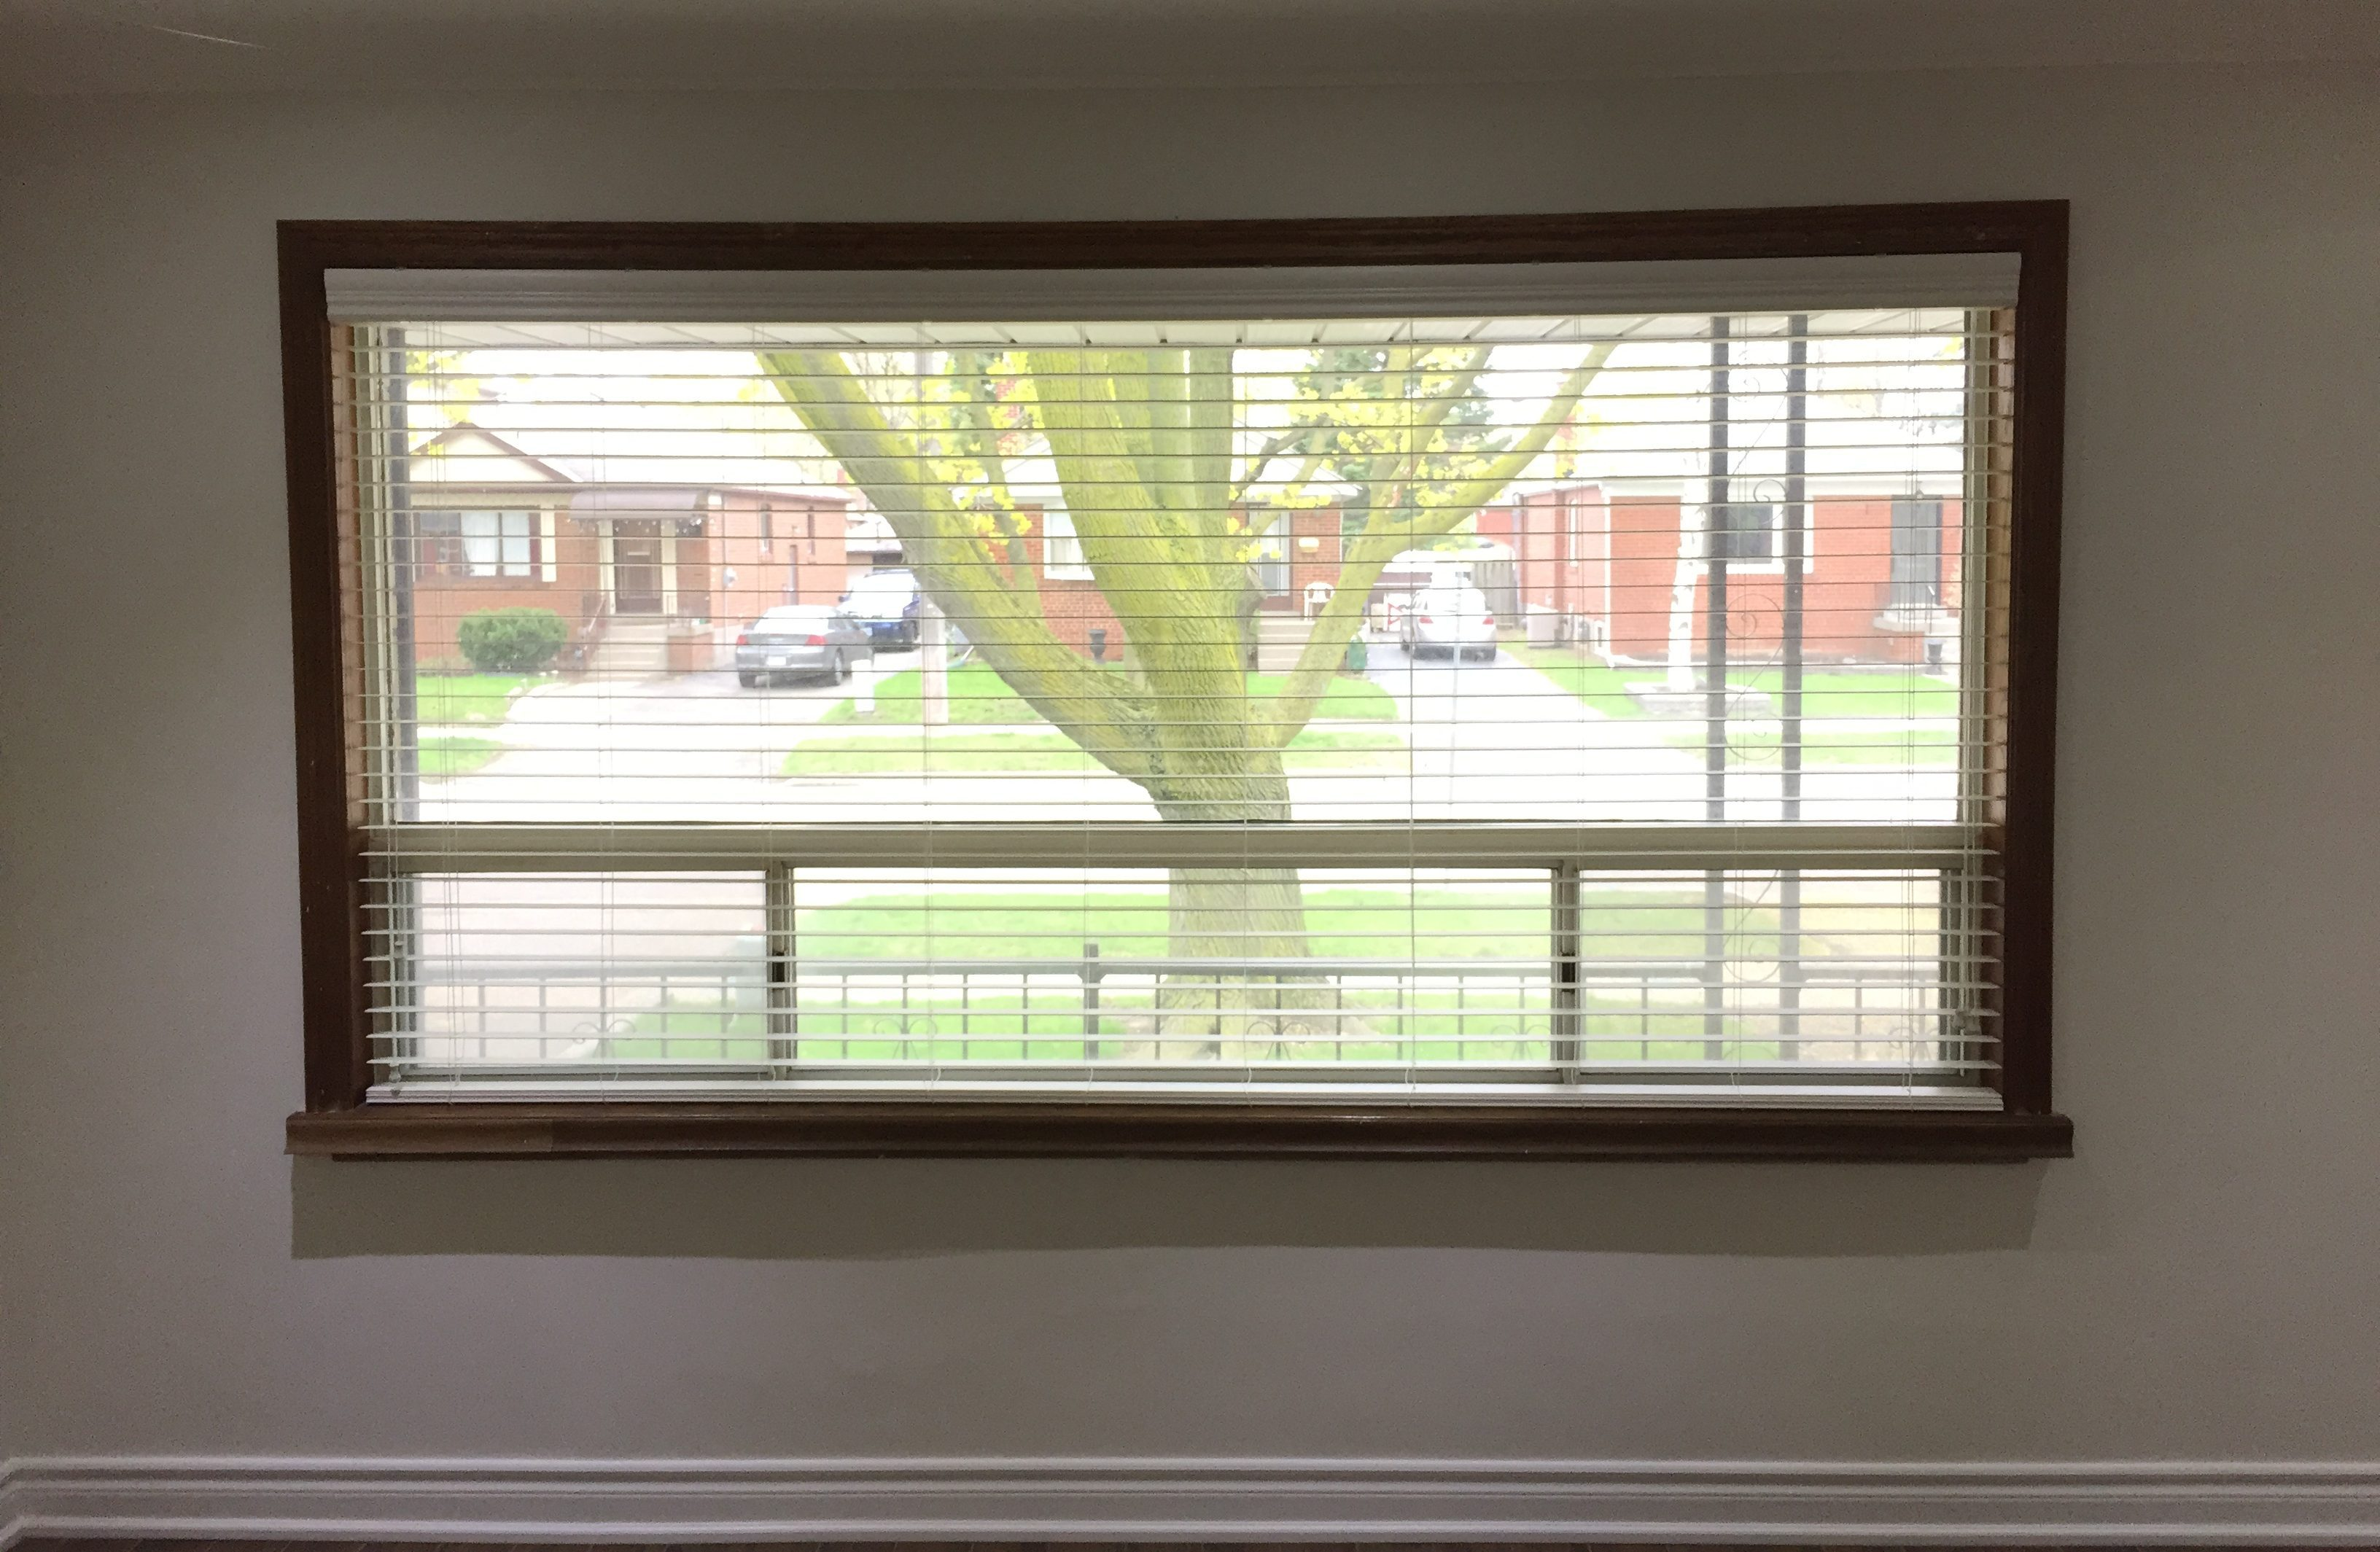 inch venetians and down valance with brackets for img door returns side on savalan horizontal window blinds a decor hold horizontals